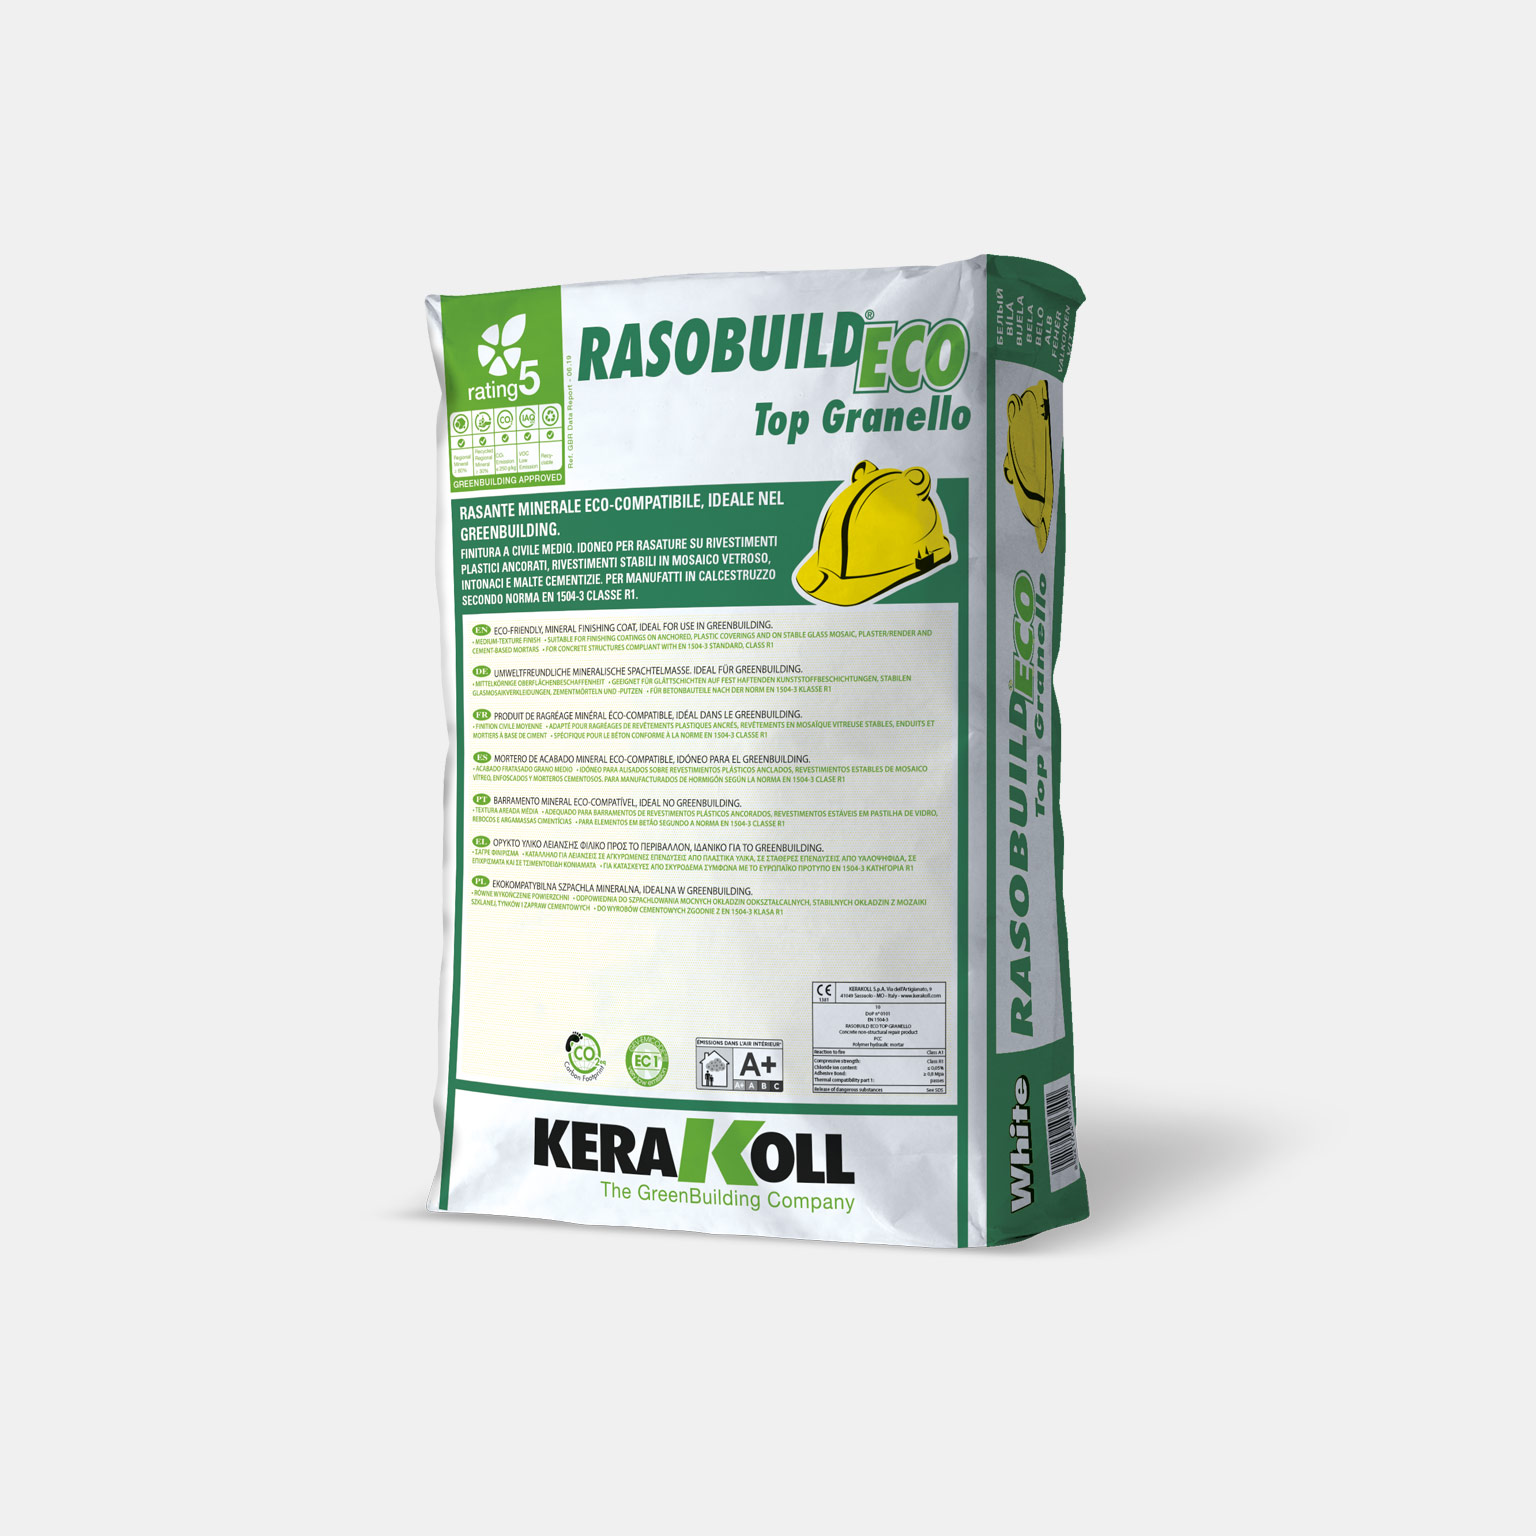 Rasobuild Eco Top Granello - immagine pack